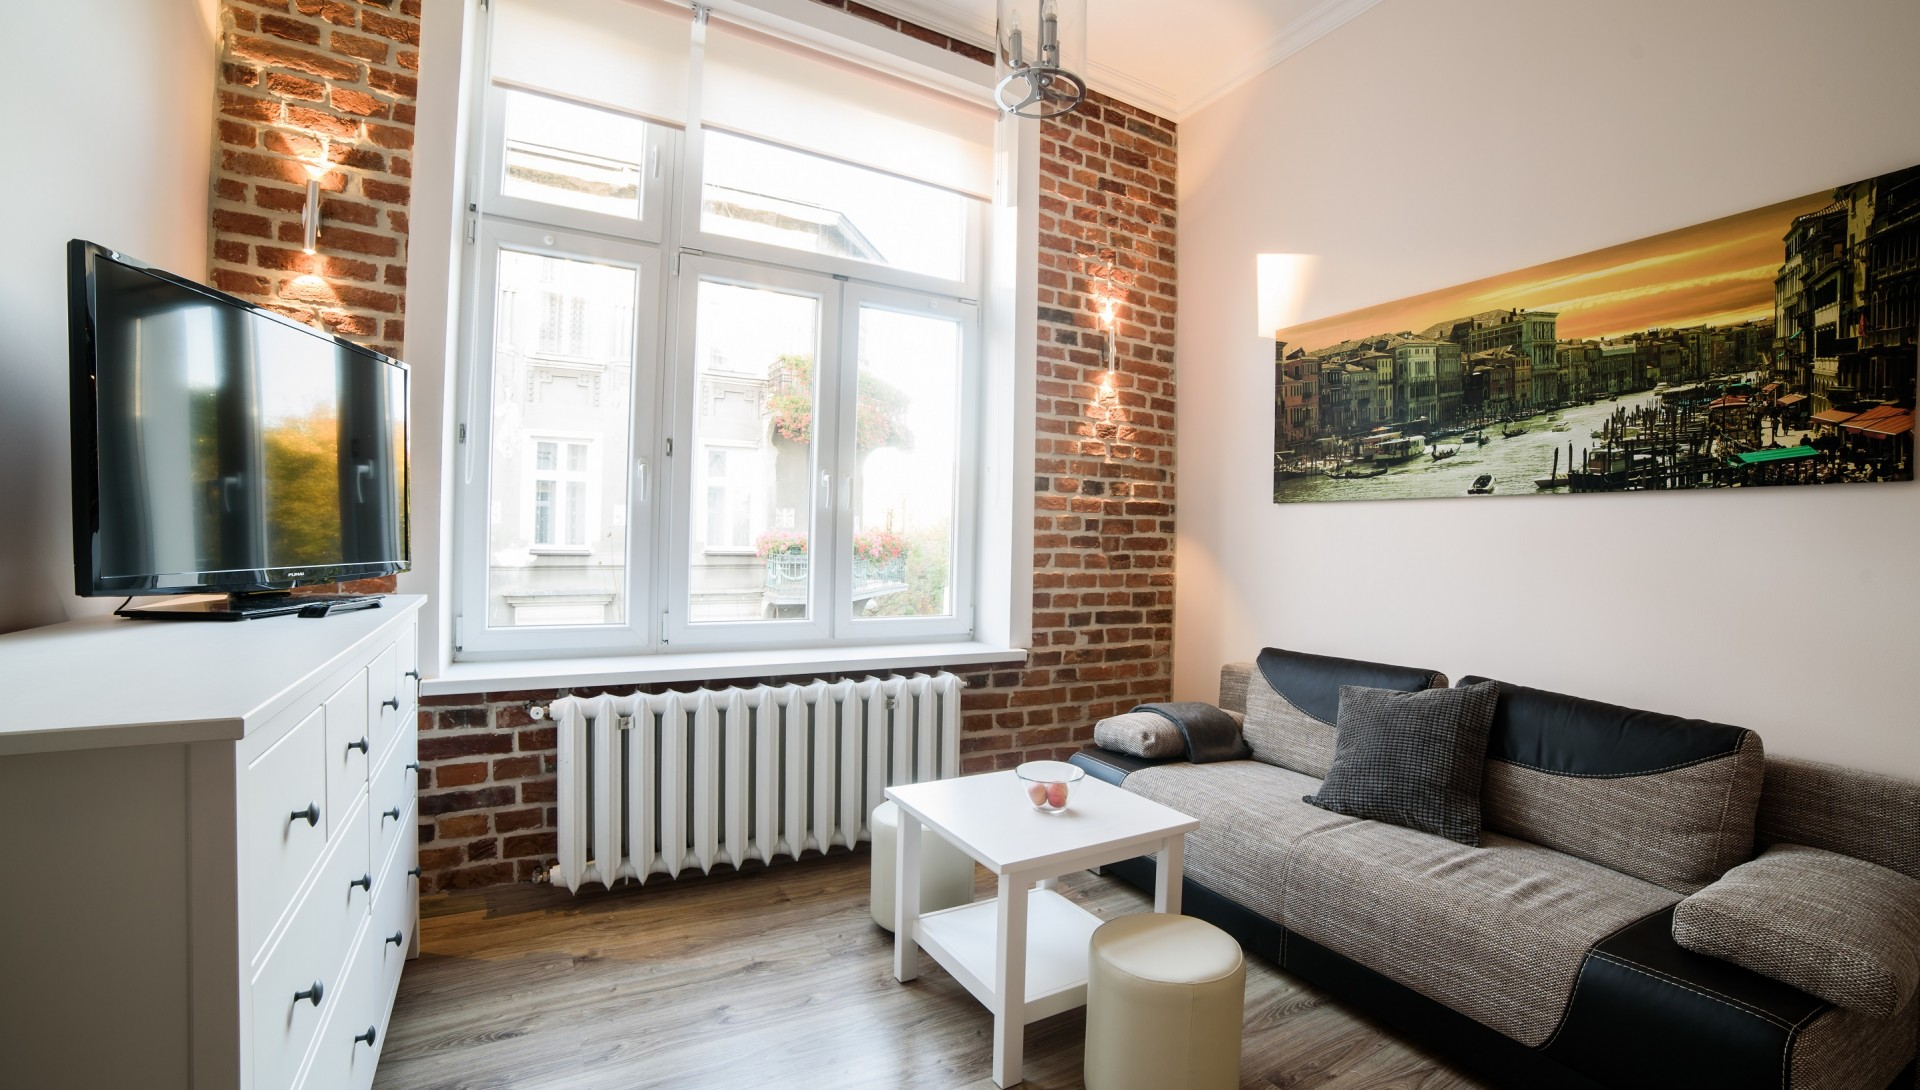 More than 200 apartments available